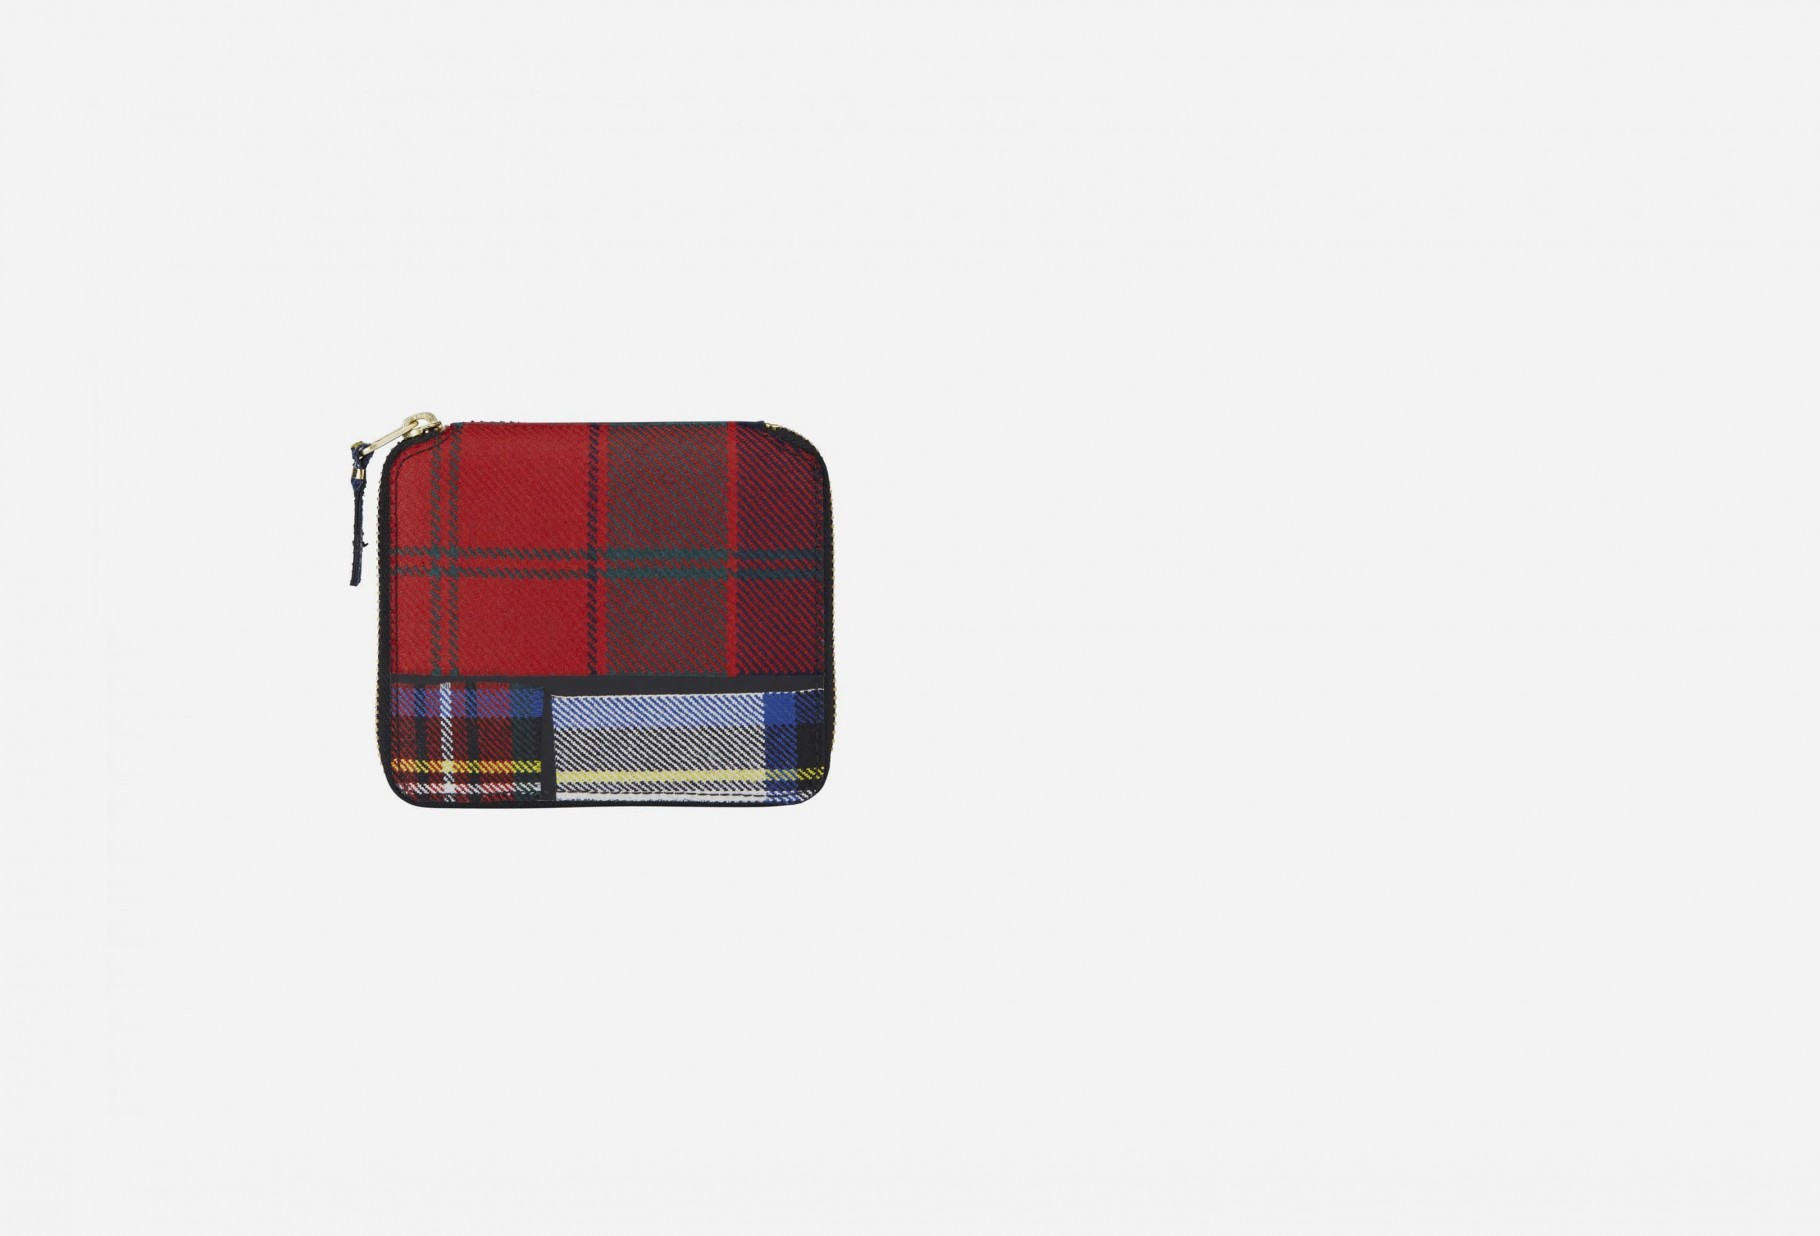 CDG WALLETS FOR WOMAN / Cdg tartan patchwork sa2100tp Red